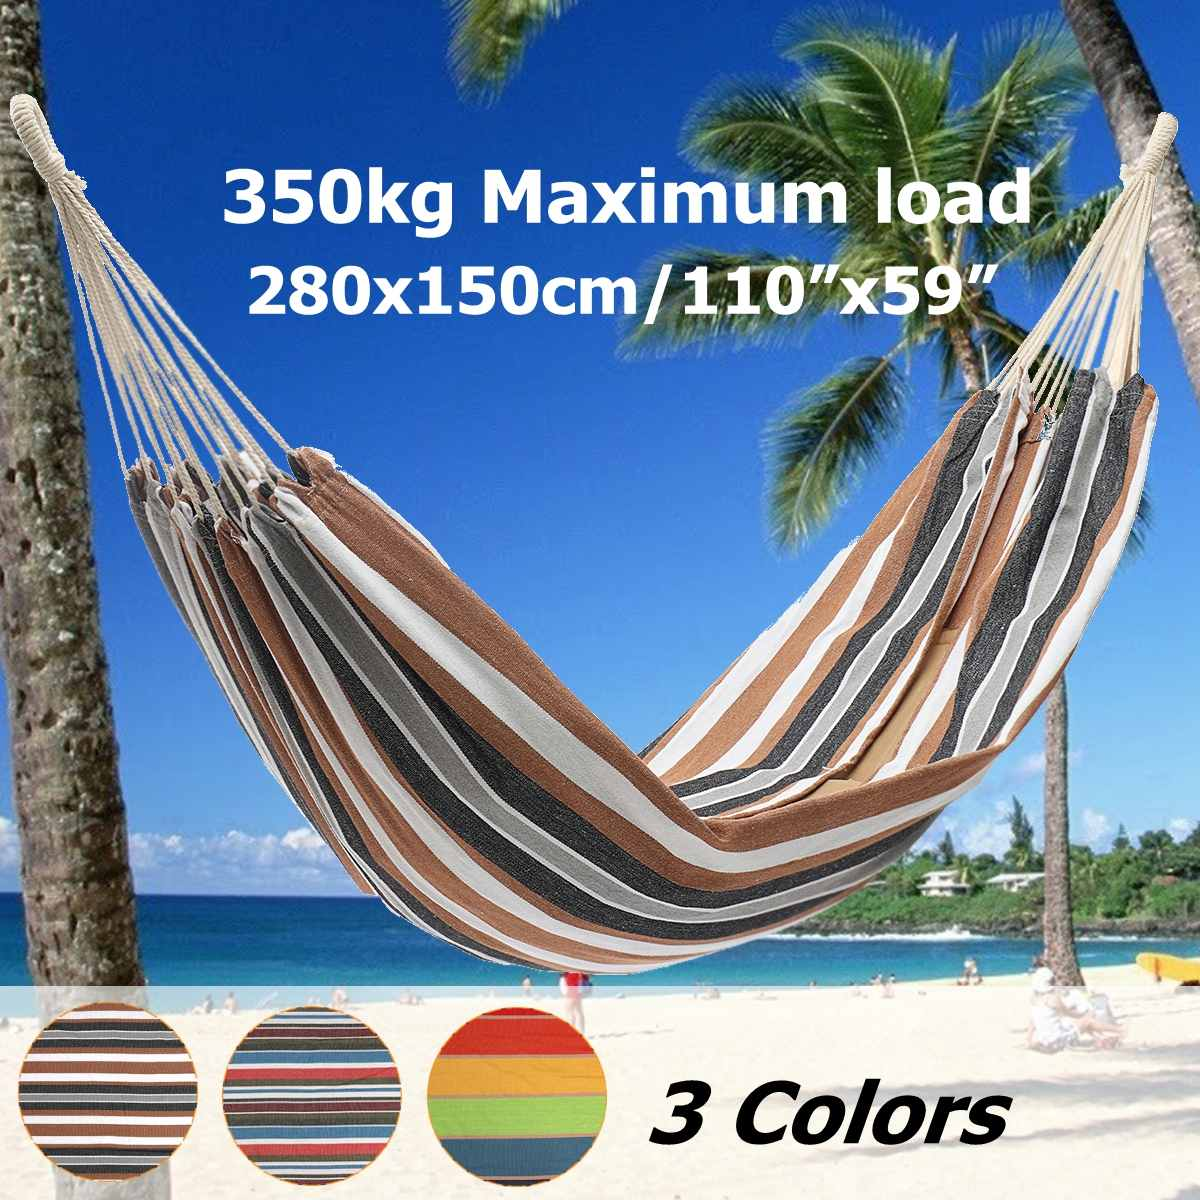 Parachute Double Hammock Swing Hanging Camping Travel Portable Swing Bed Max Load 350kgParachute Double Hammock Swing Hanging Camping Travel Portable Swing Bed Max Load 350kg